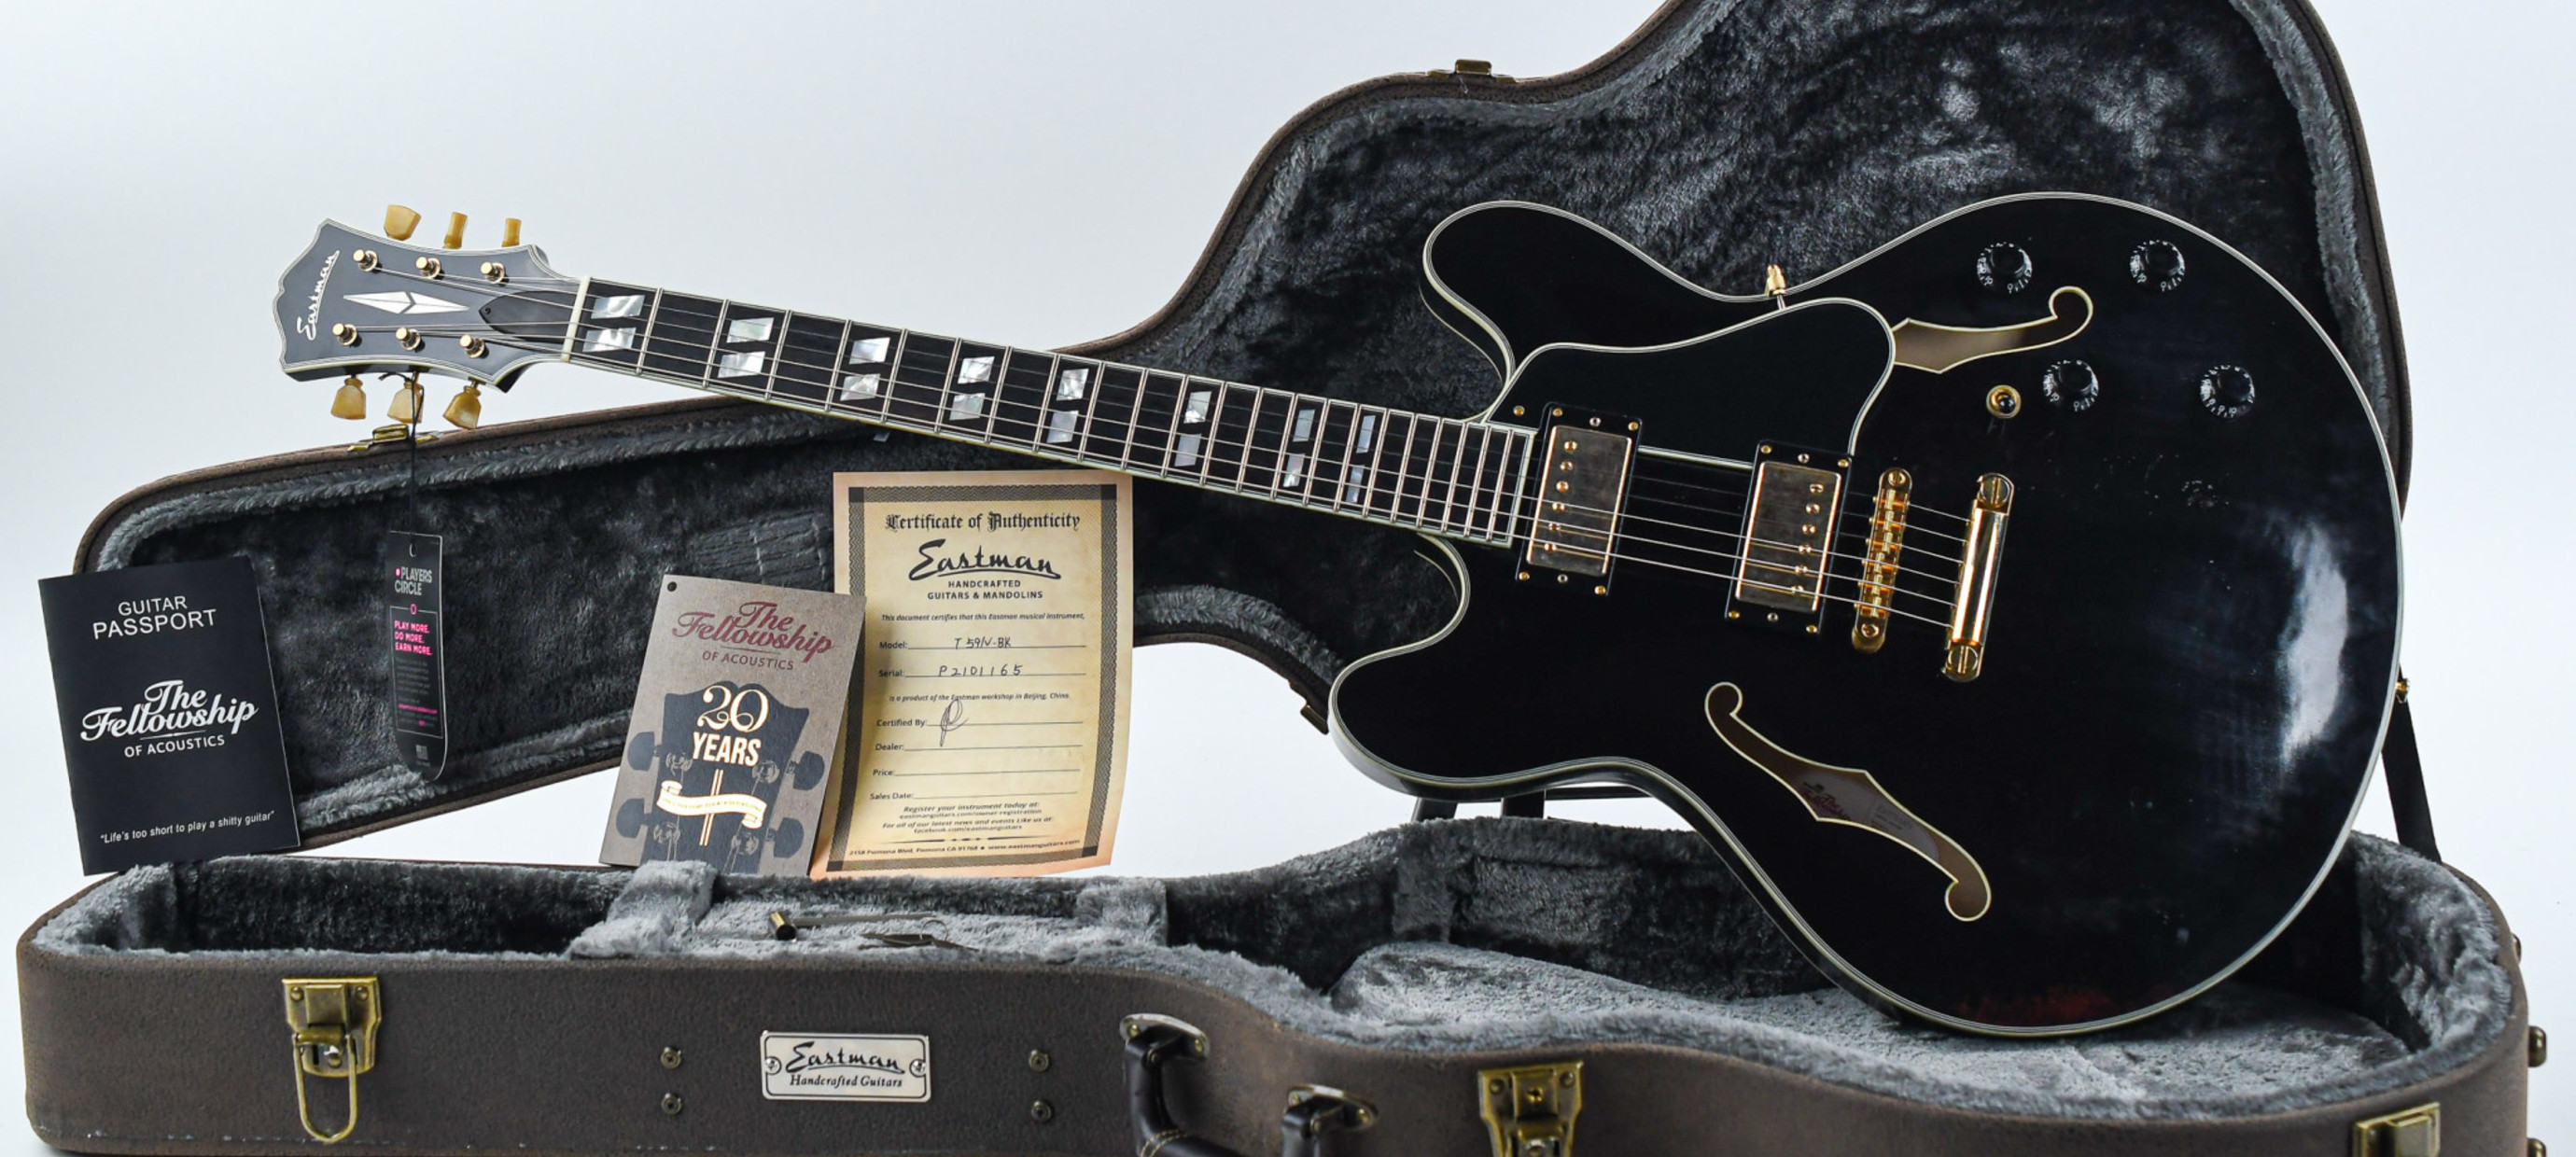 Just in: more exclusive 20th Anniversary guitars  with a free  goodie bag!